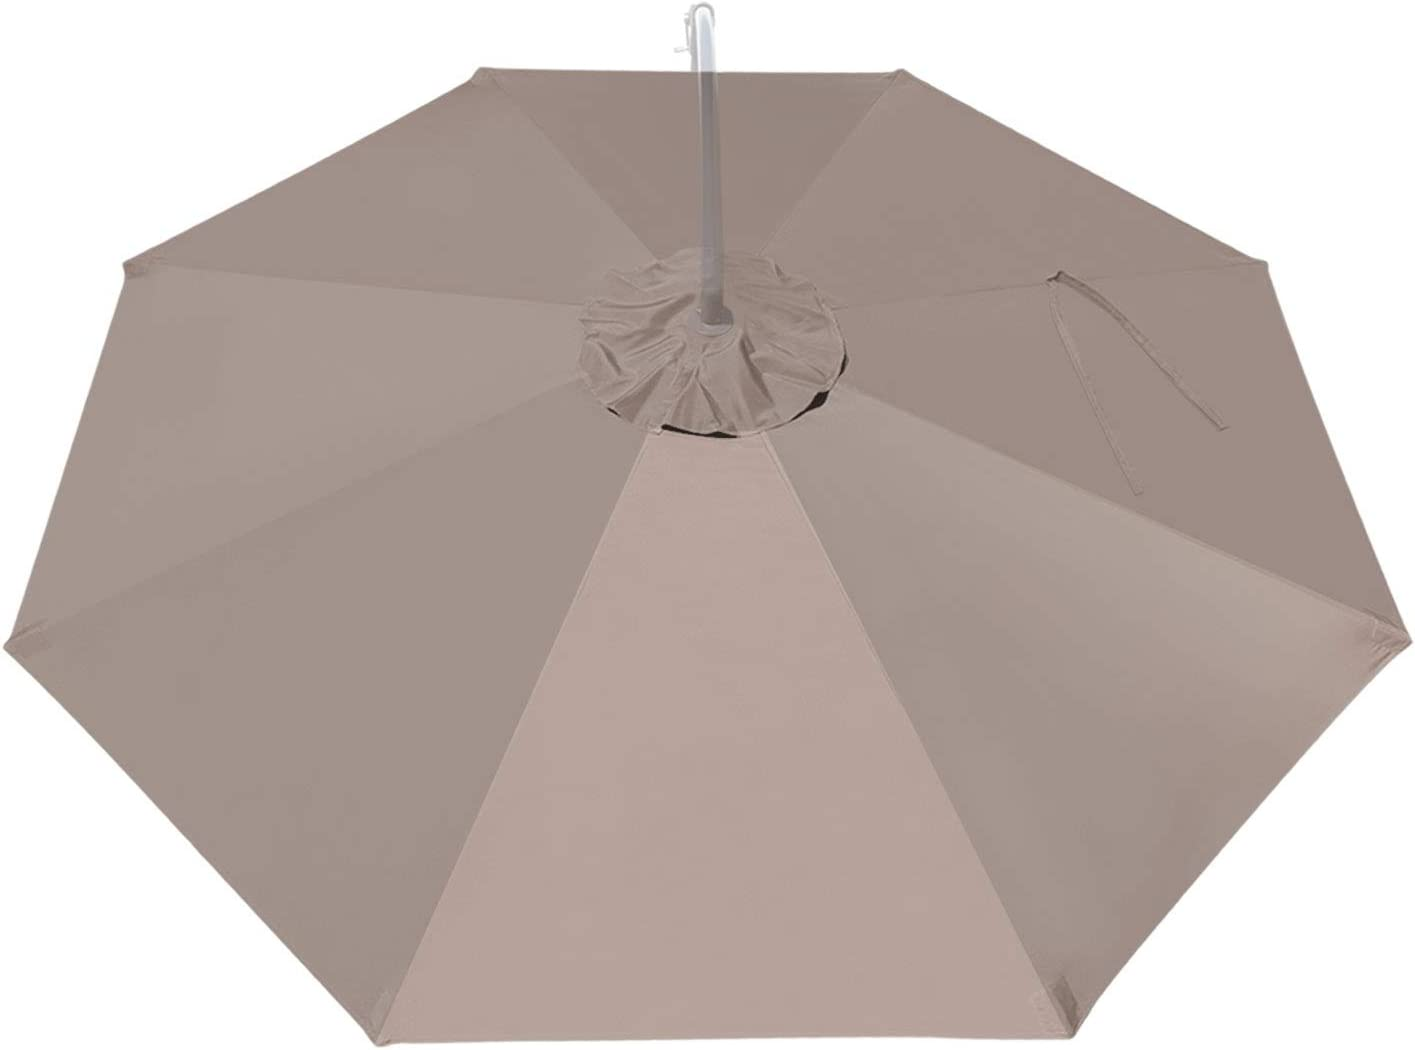 BenefitUSA Replacement Umbrella Canopy for 10ft 8 ribs (Canopy Only) (Taupe)